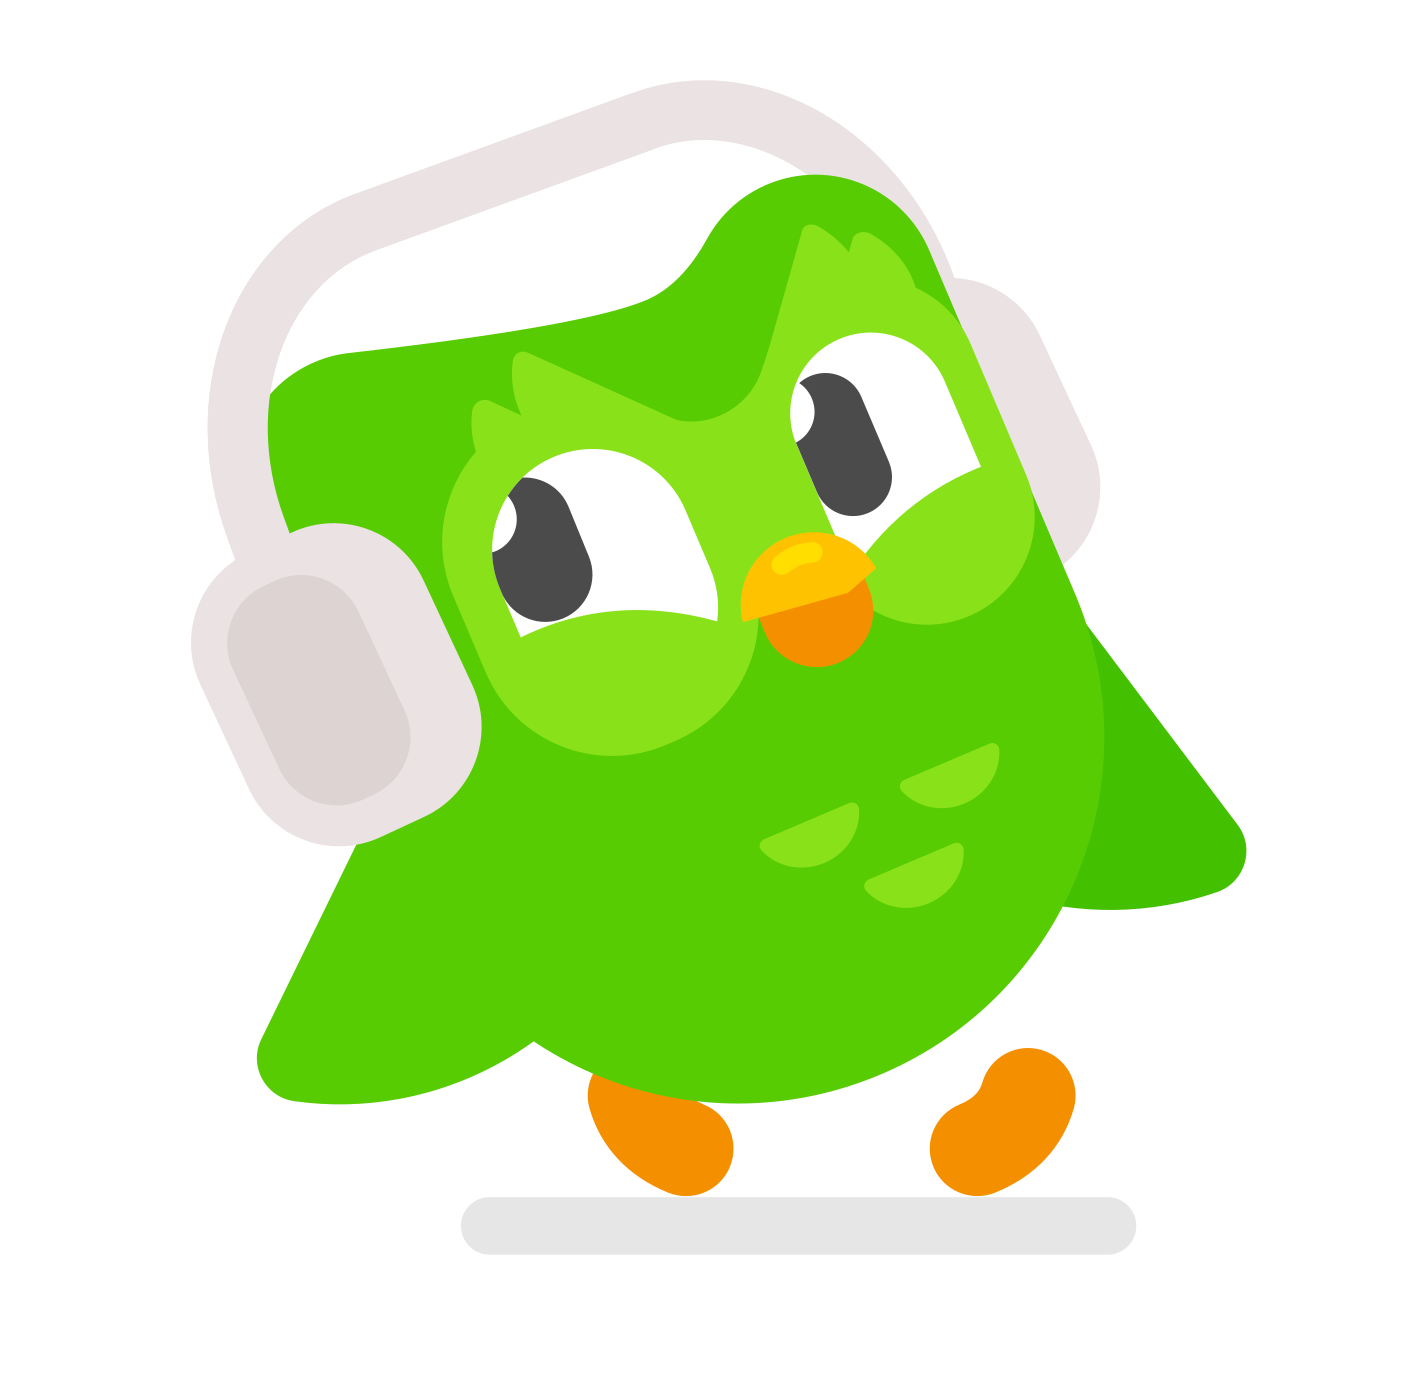 image of Duo the owl walking cheerfully with headphones on